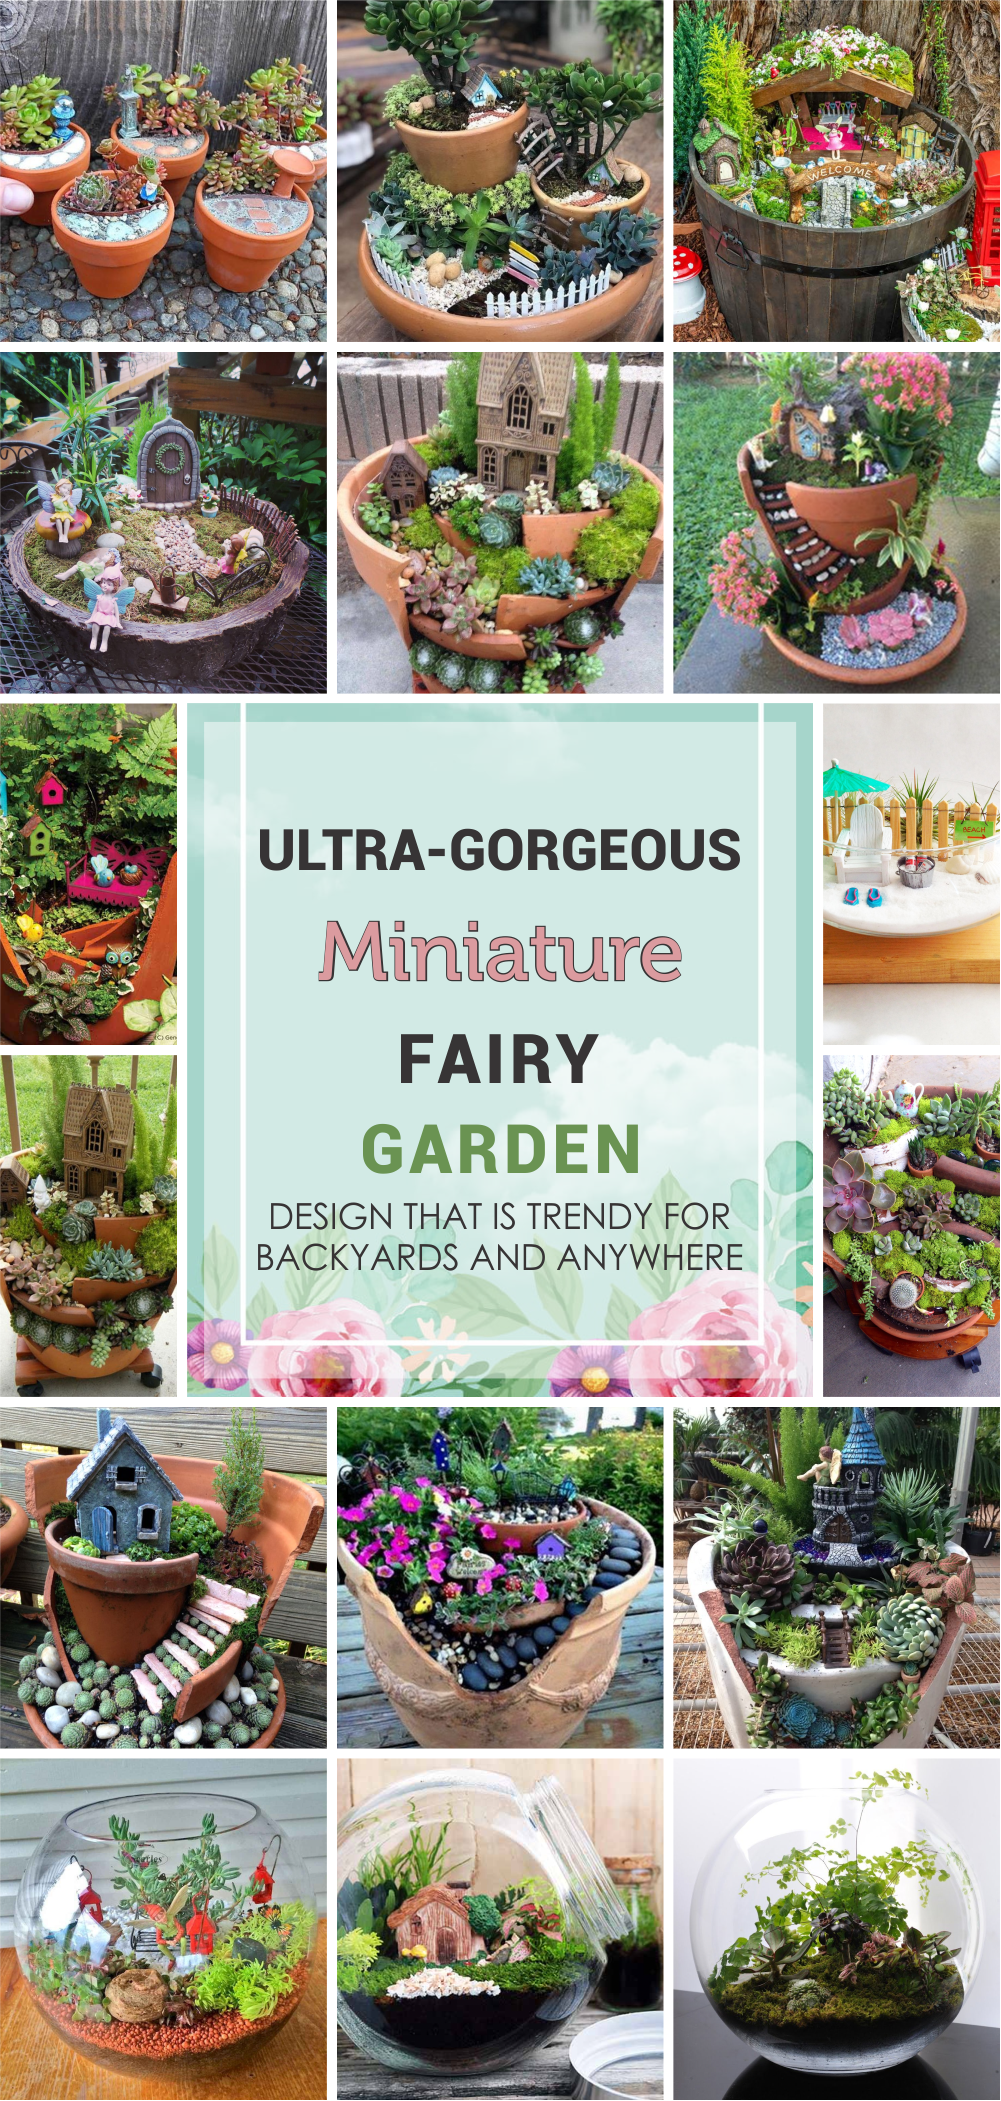 Untitled-1ultra-gorgeous-miniature-fairy-garden-design-that-is-trendy-for-backyards-and-anywhere-1